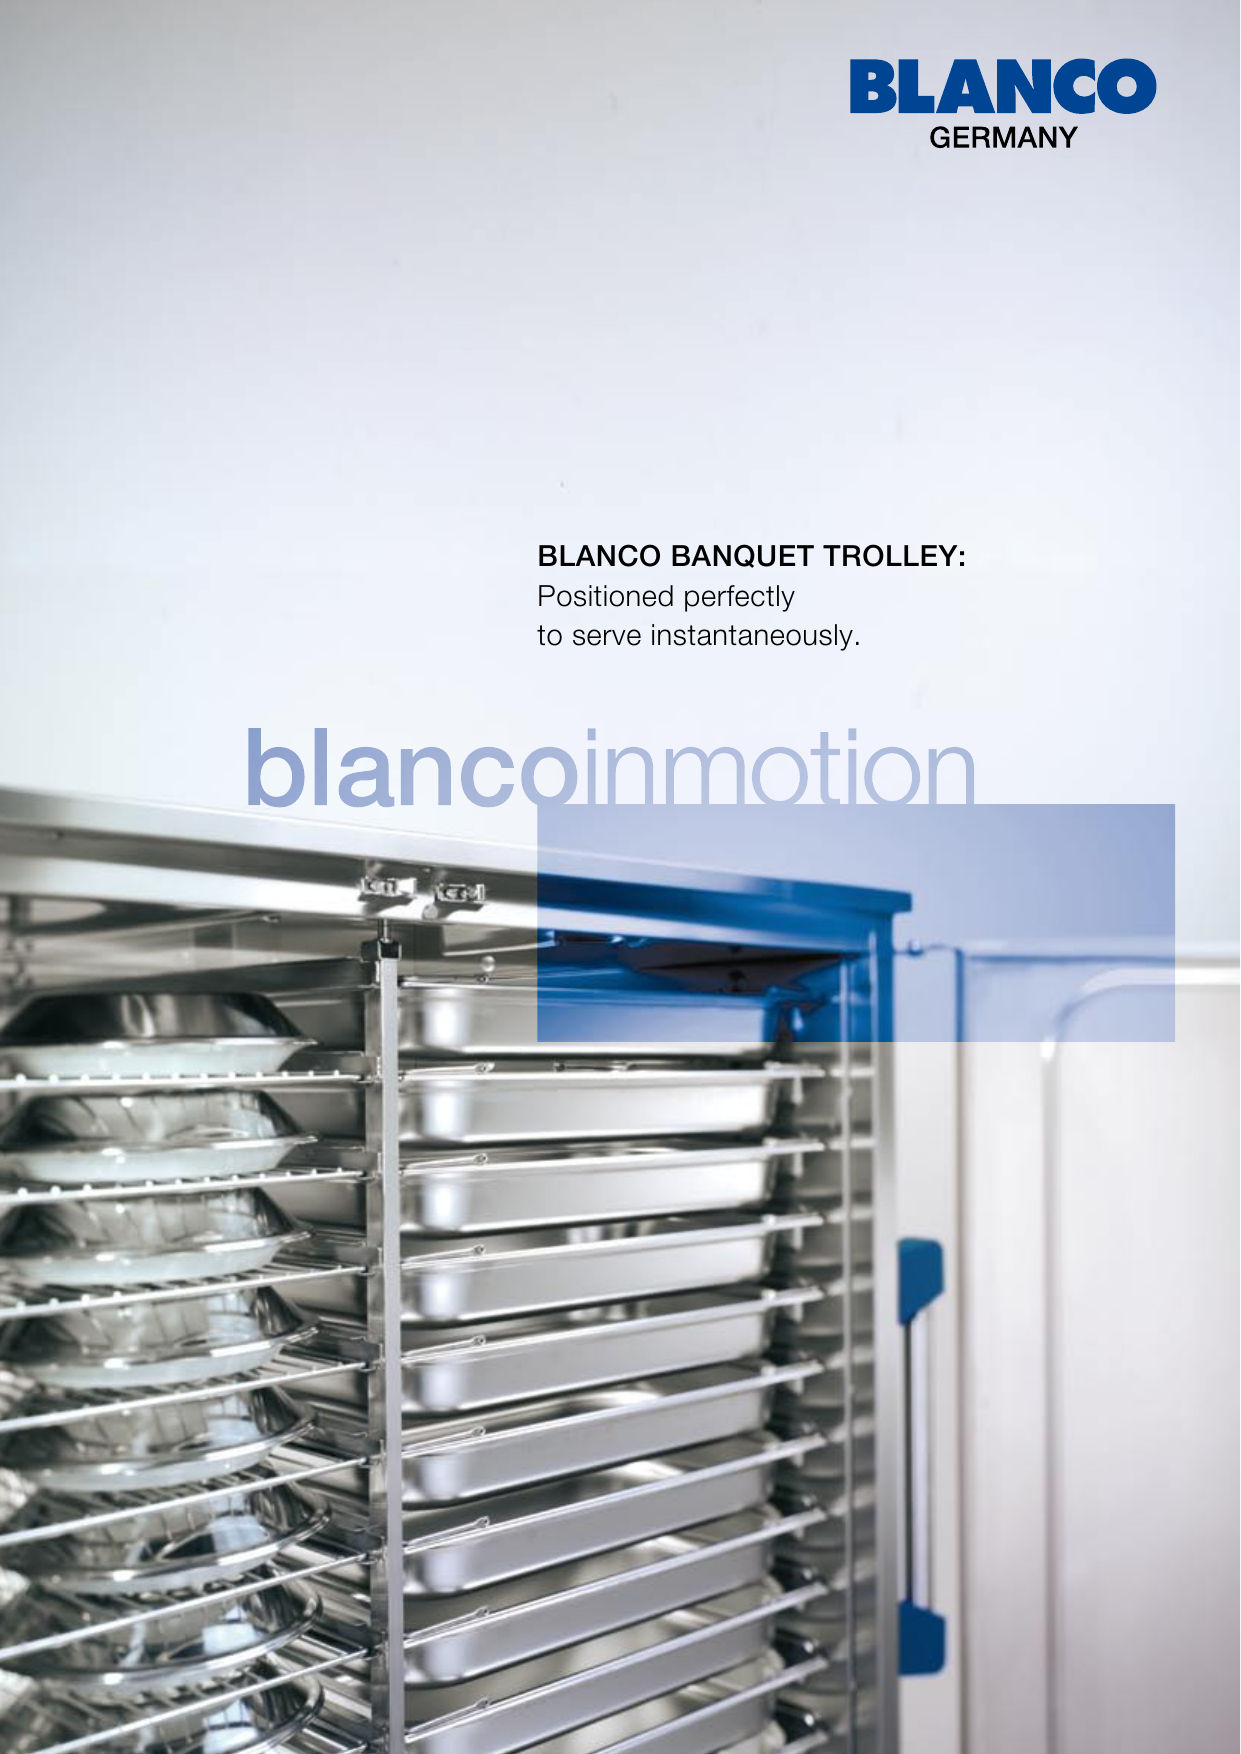 Blanco Oberderdingen blanco banquet trolley positioned perfectly to serve